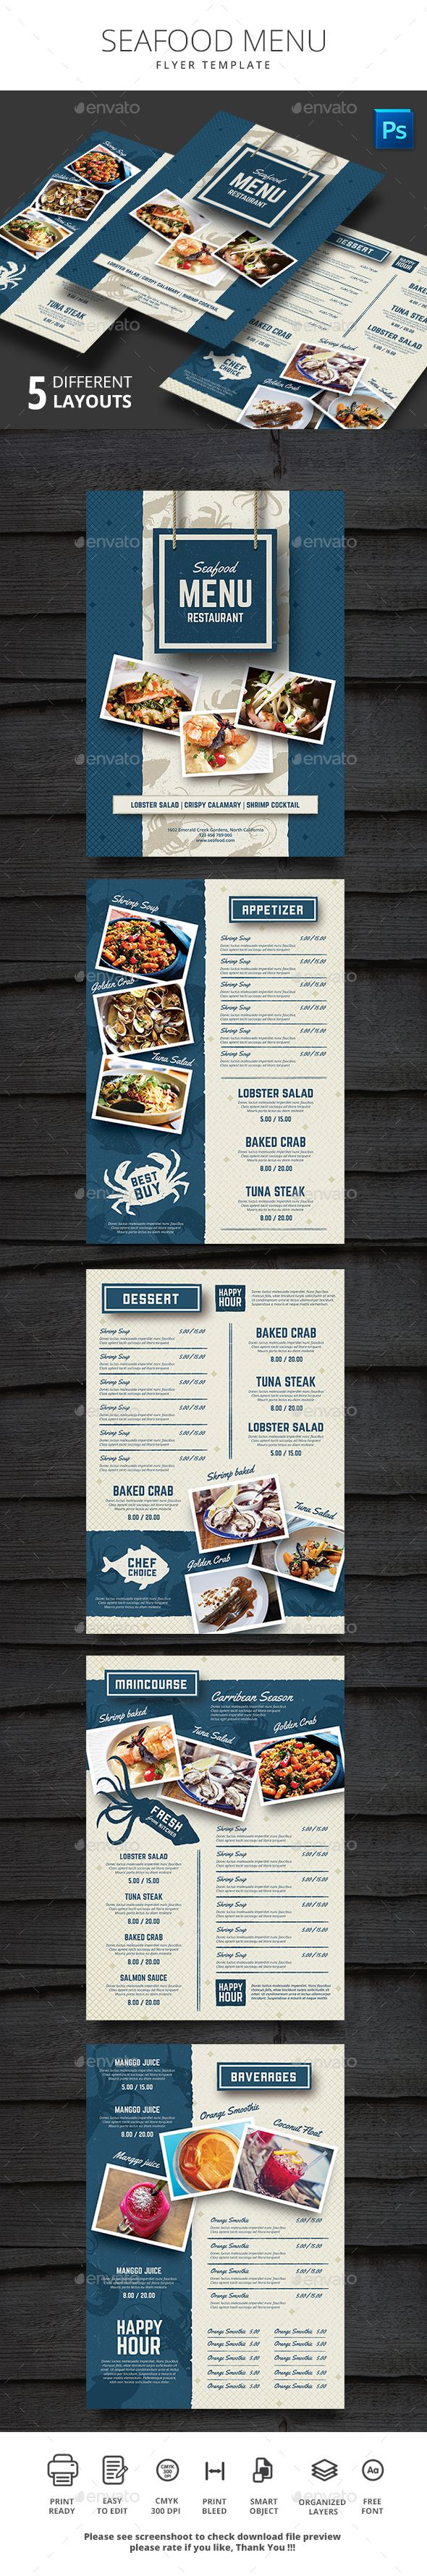 Seafood Restauran Menu Design Template - Food Menus Print Template PSD Template. Download here: https://graphicriver.net/item/seafood-restauran-menu/18706100?ref=yinkira